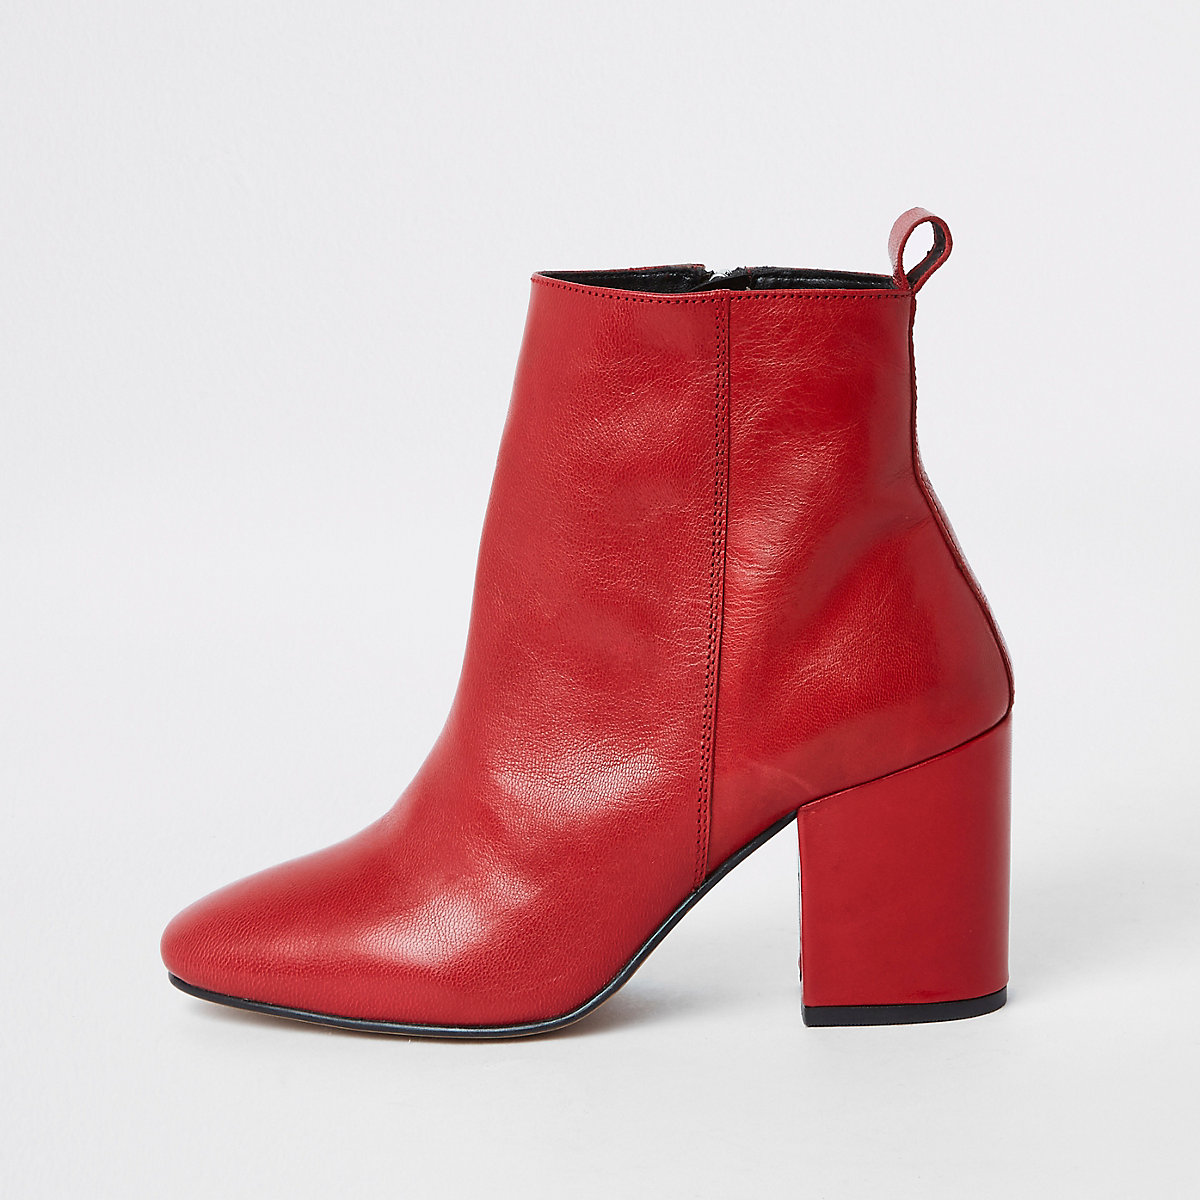 Red leather block heel ankle boots